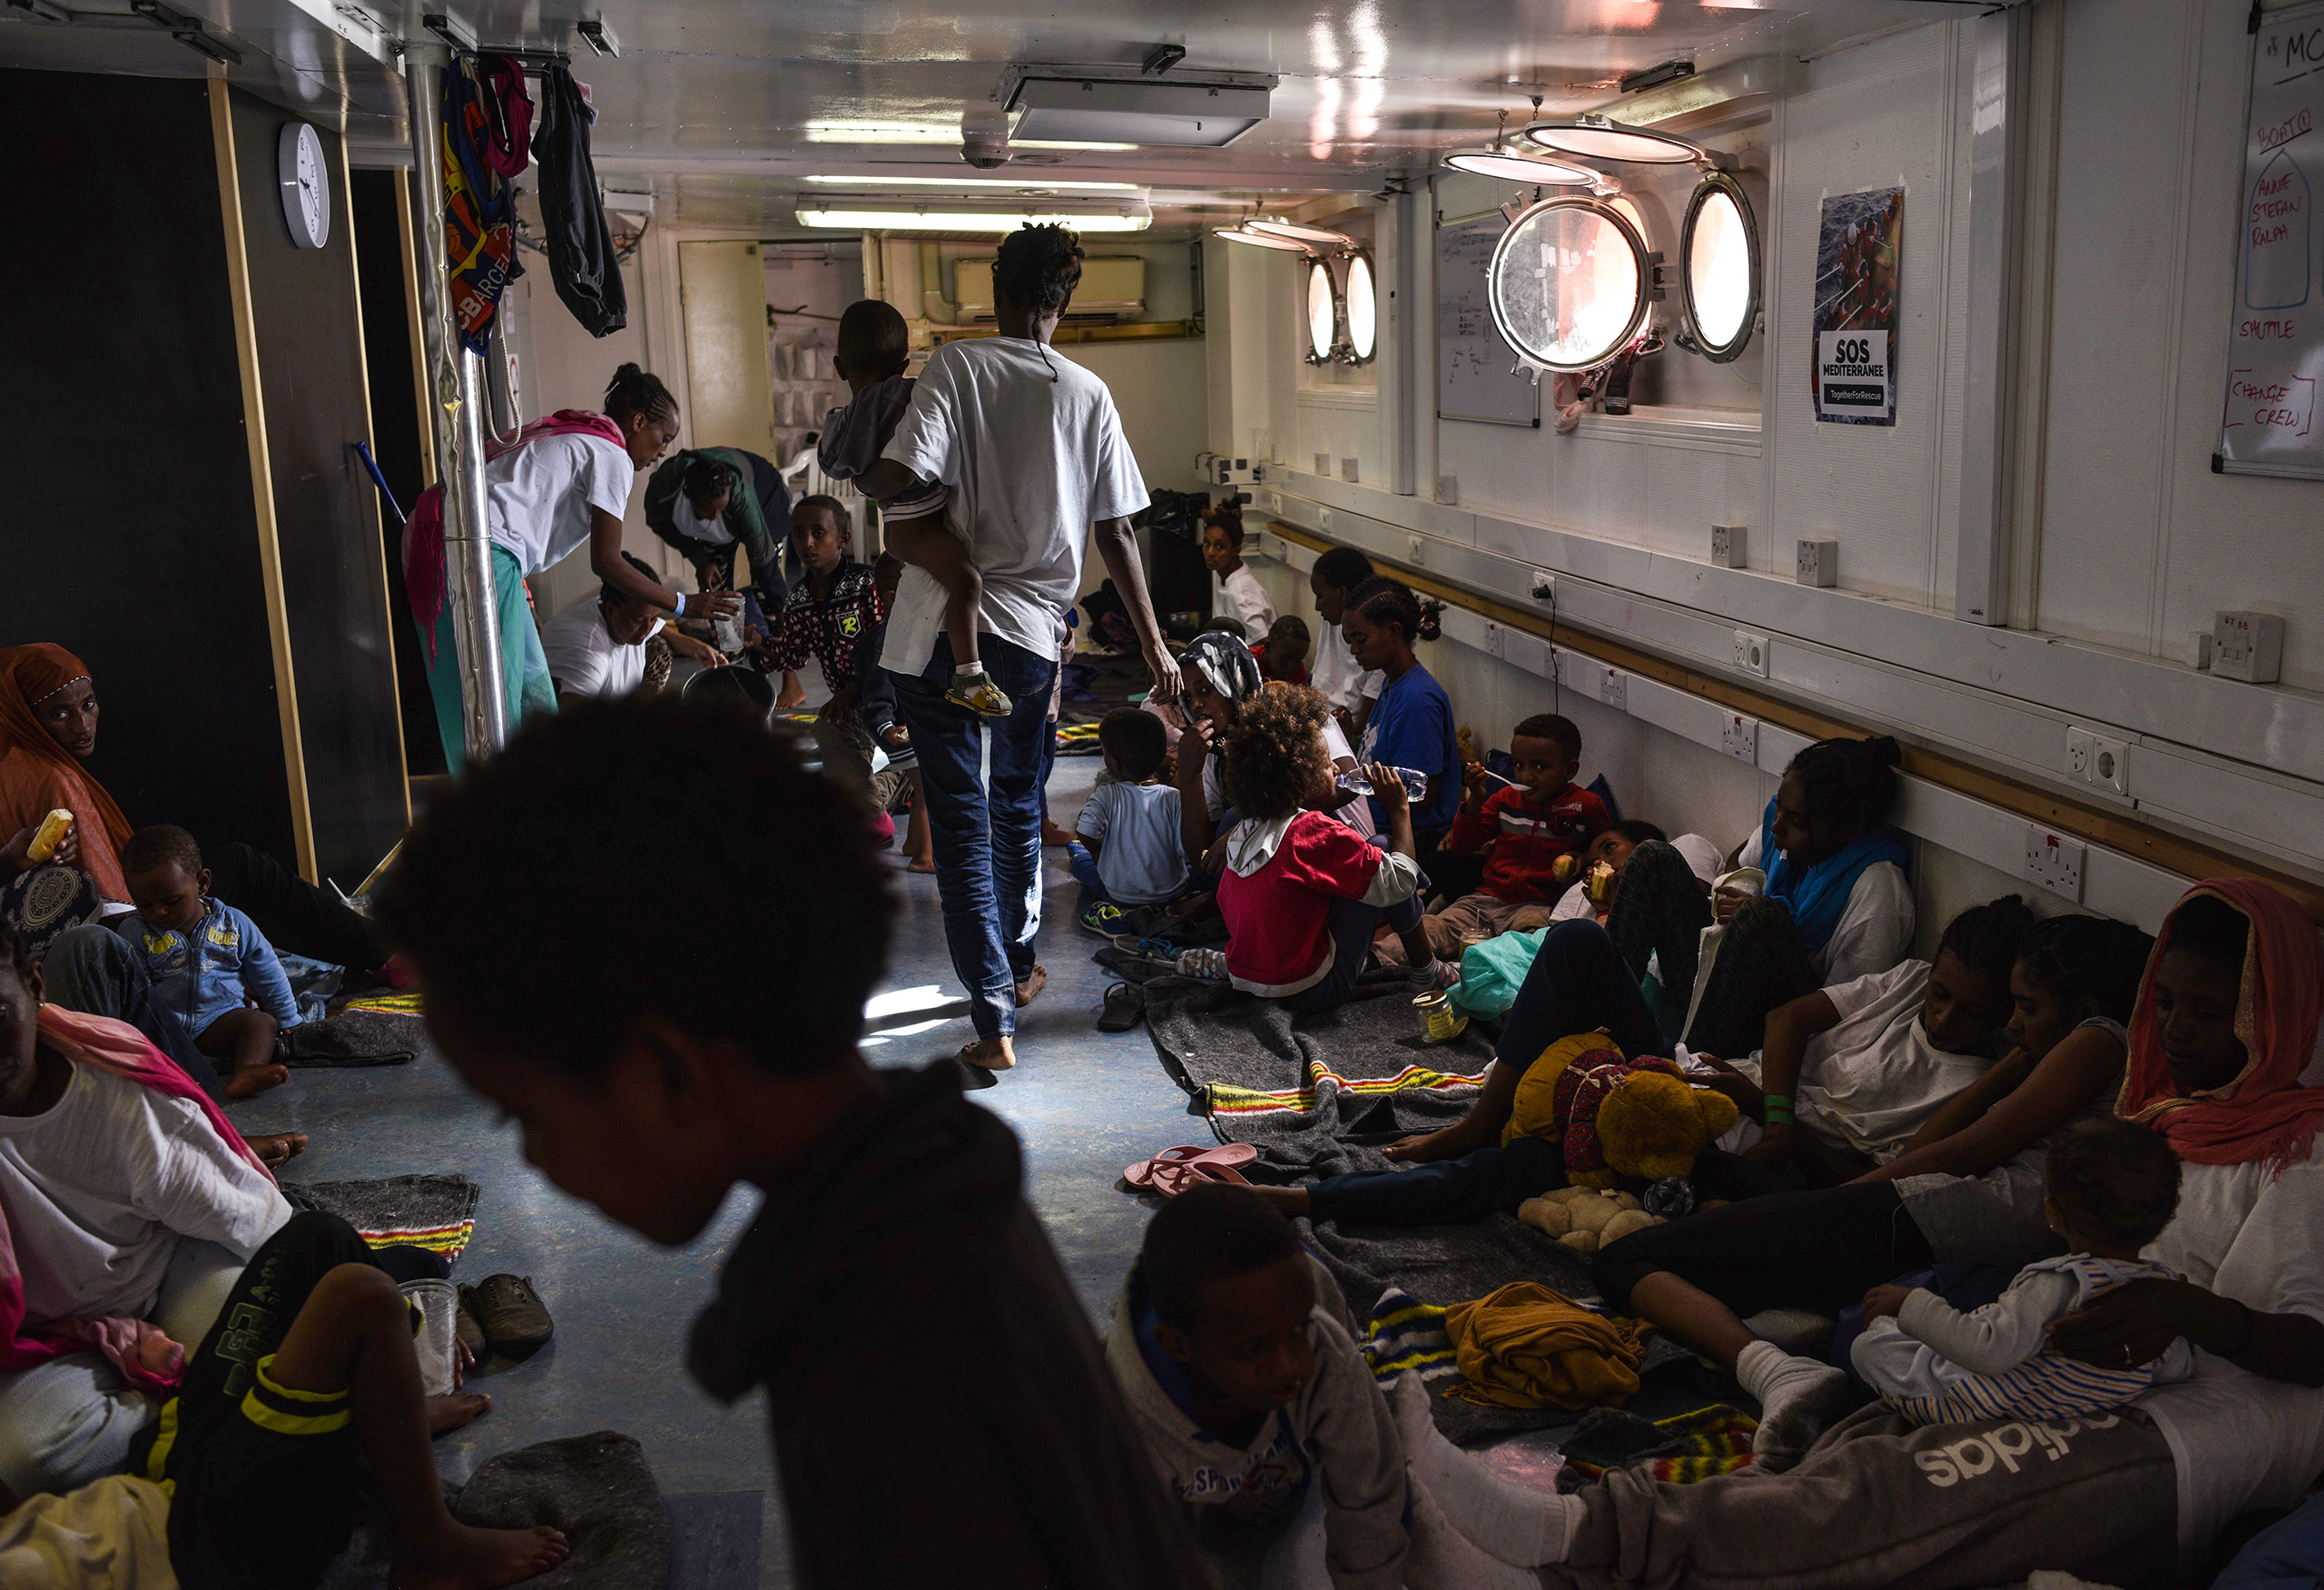 Women and children eat and rest below the deck of the rescue ship. Aug. 22, 2016.